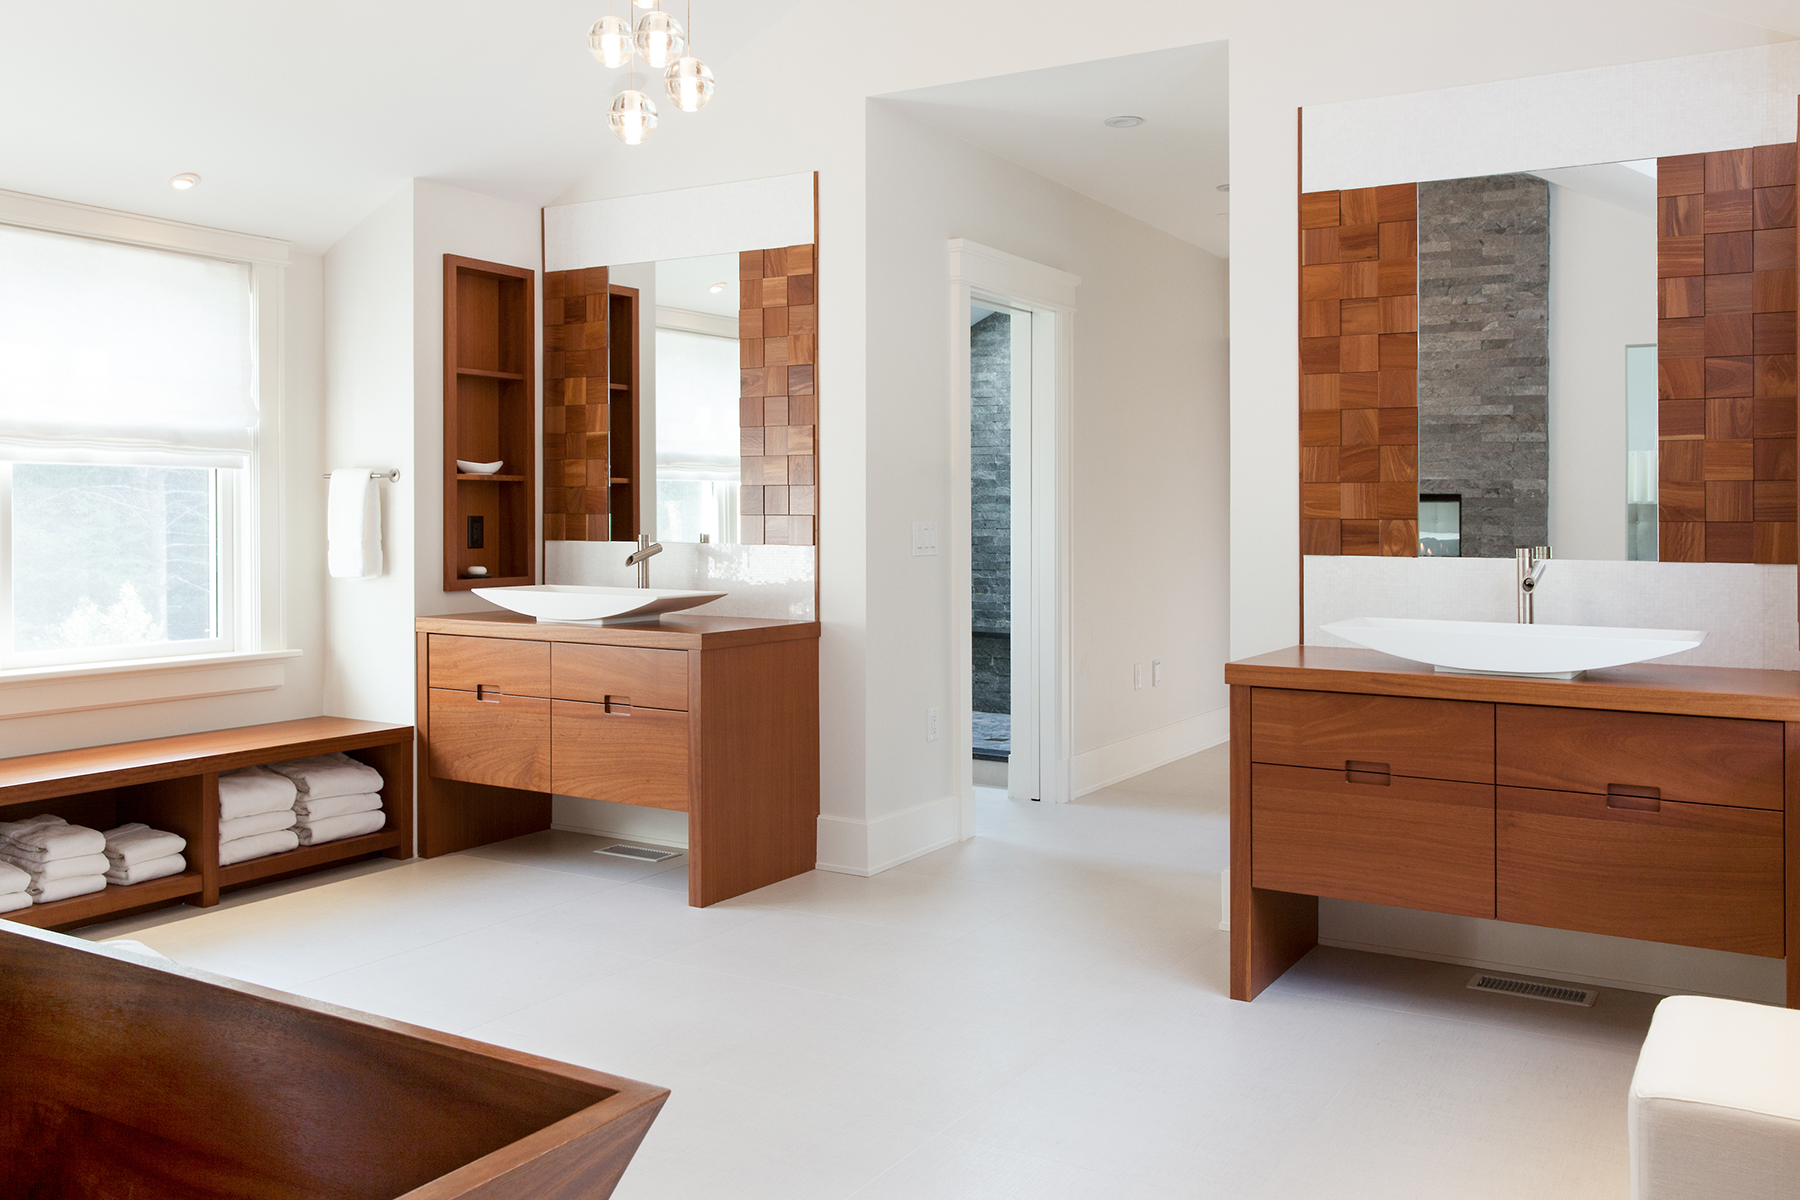 Enter The Master Bedroom Through The Bath Why Not The Boston Globe